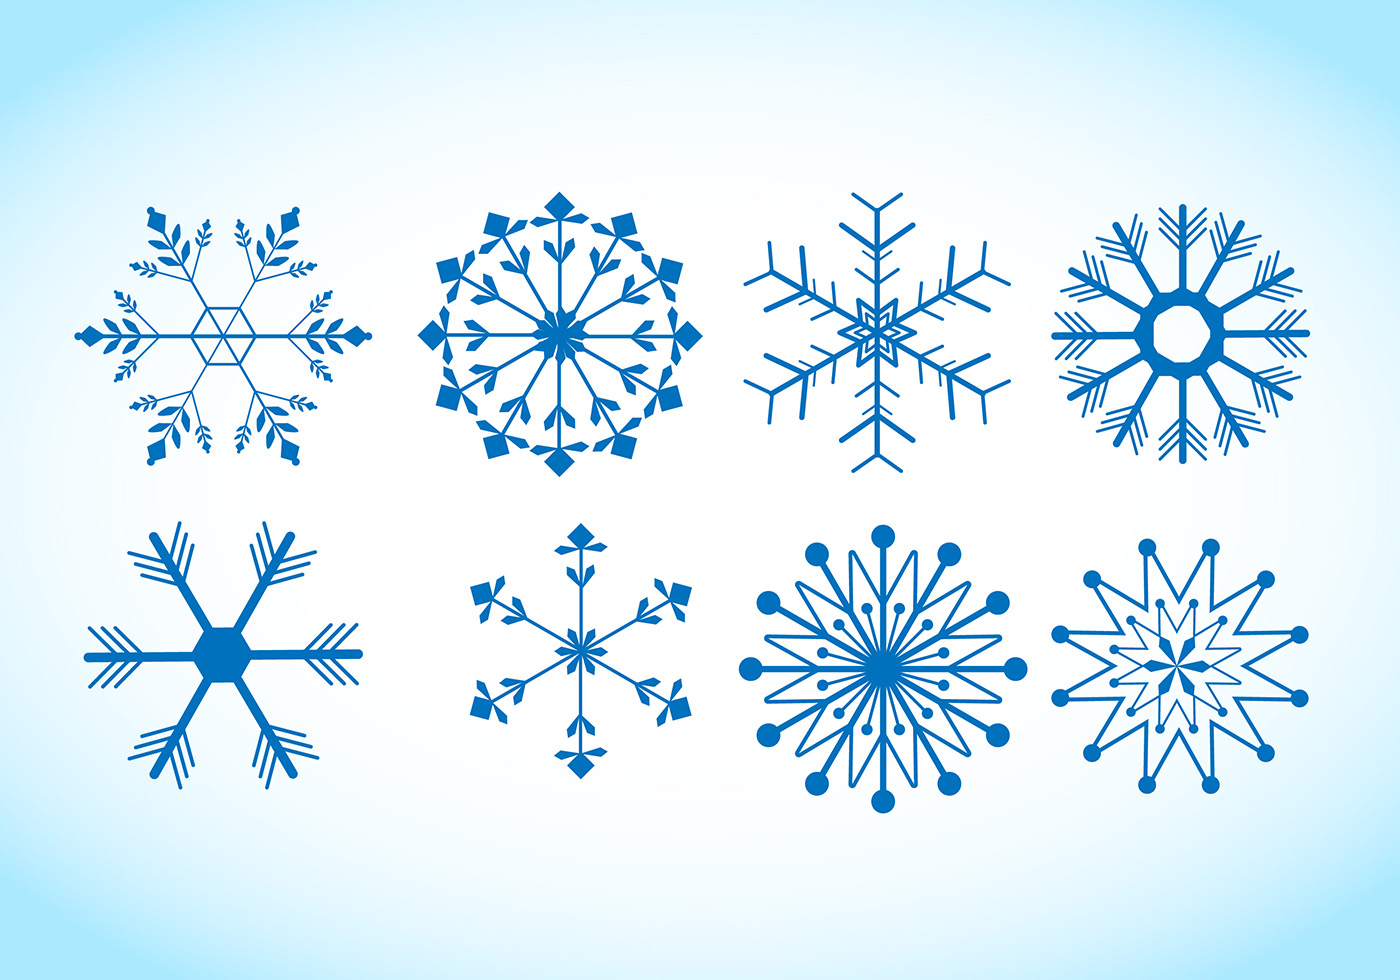 Snowflake Vectors - Download Free Vector Art, Stock ...